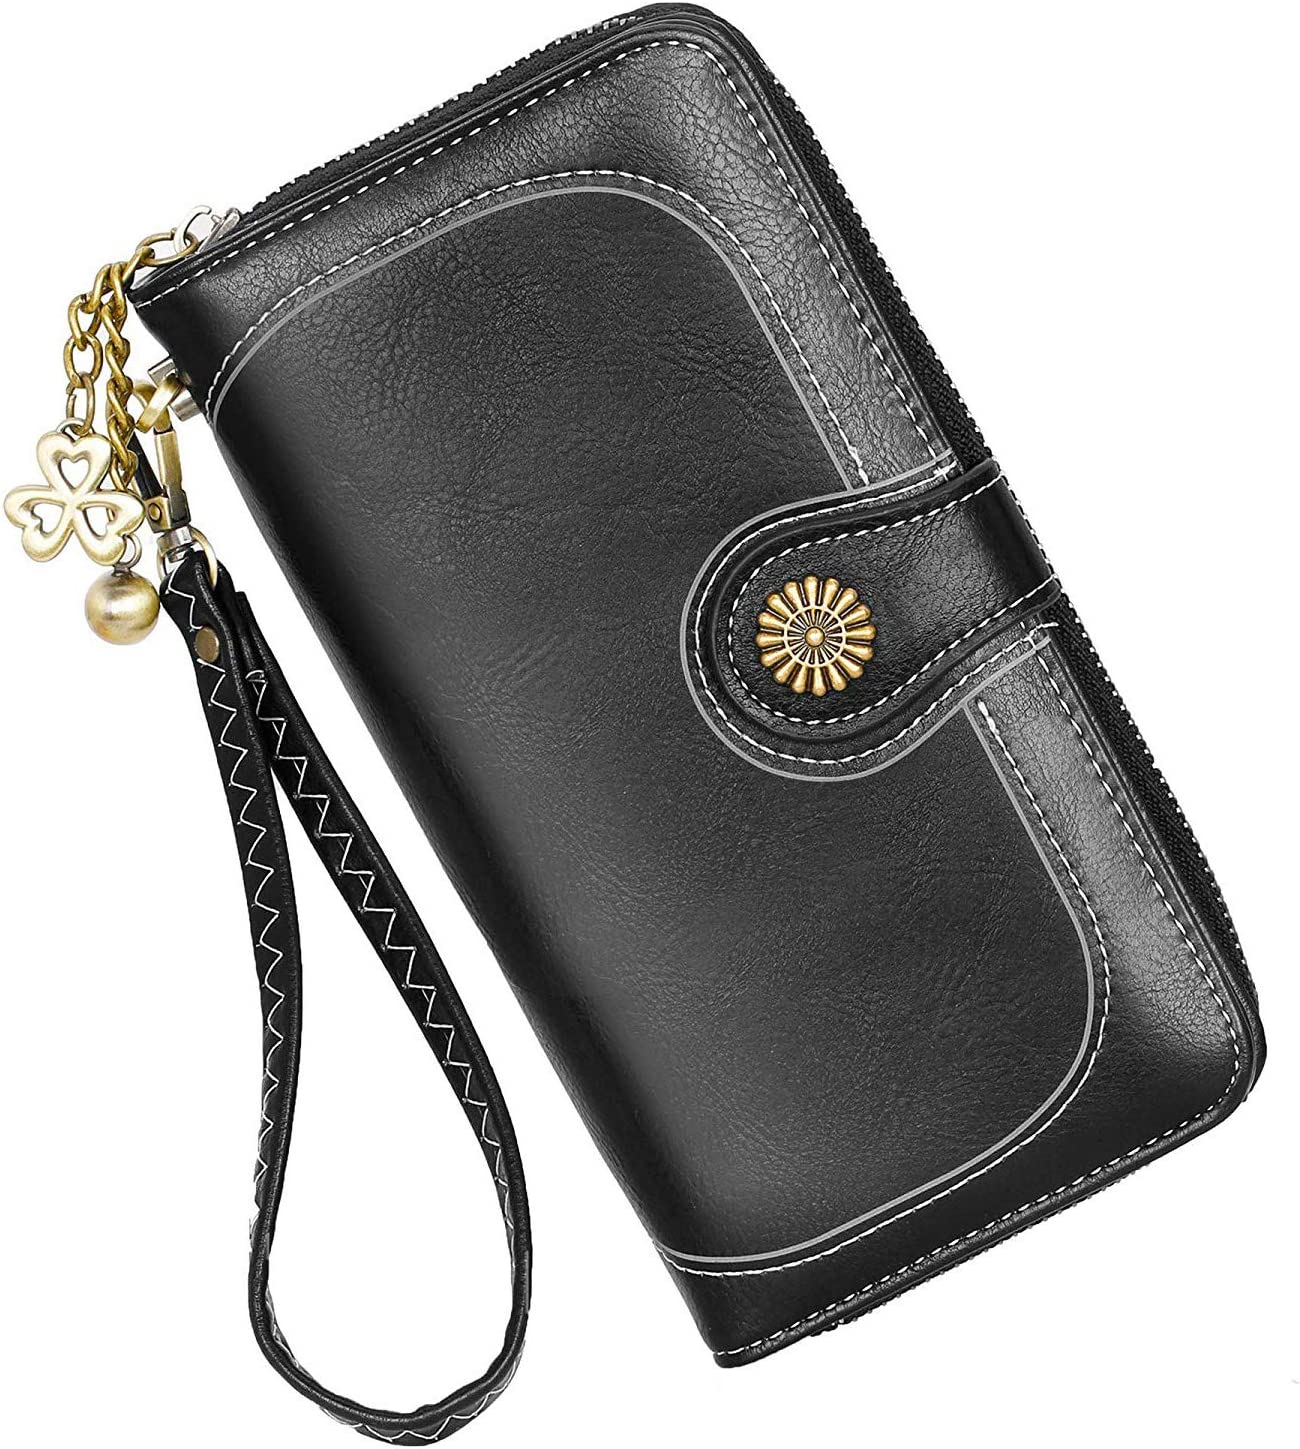 Black Cats Womens RFID Blocking Zip Around Wallet Genuine Leather Clutch Long Card Holder Organizer Wallets Large Travel Purse